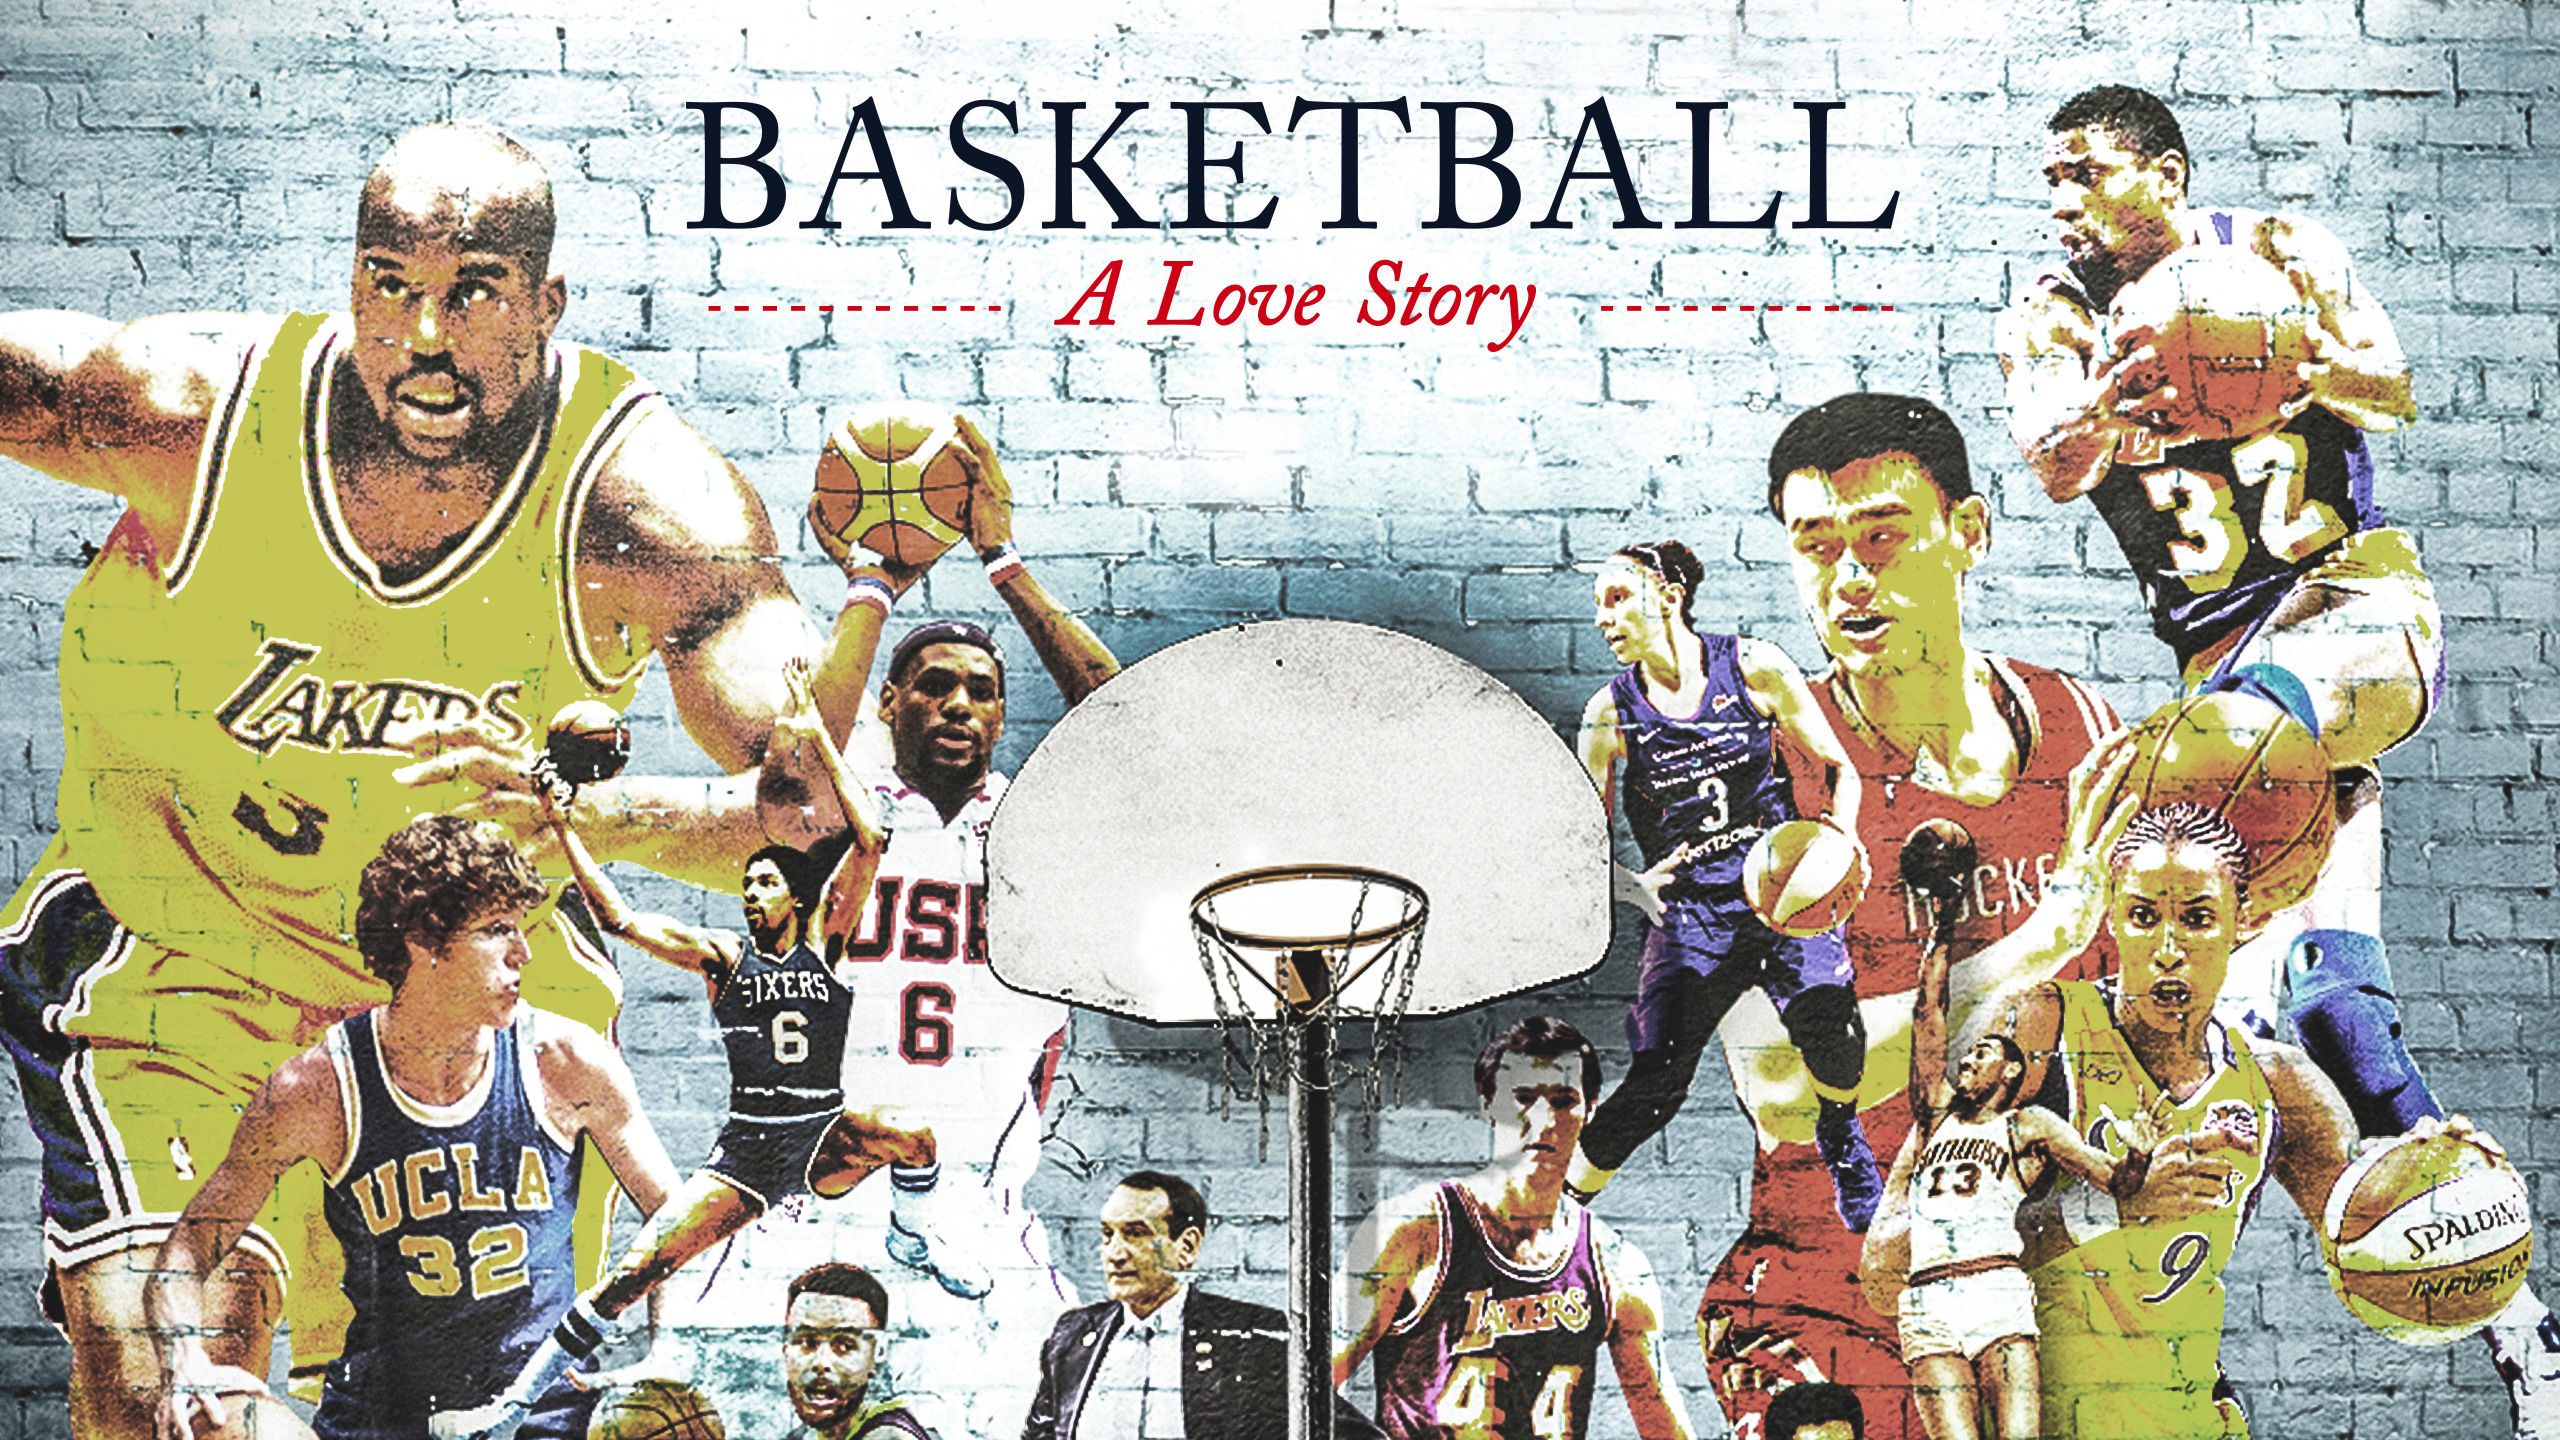 Basketball: A Love Story - Episode 4